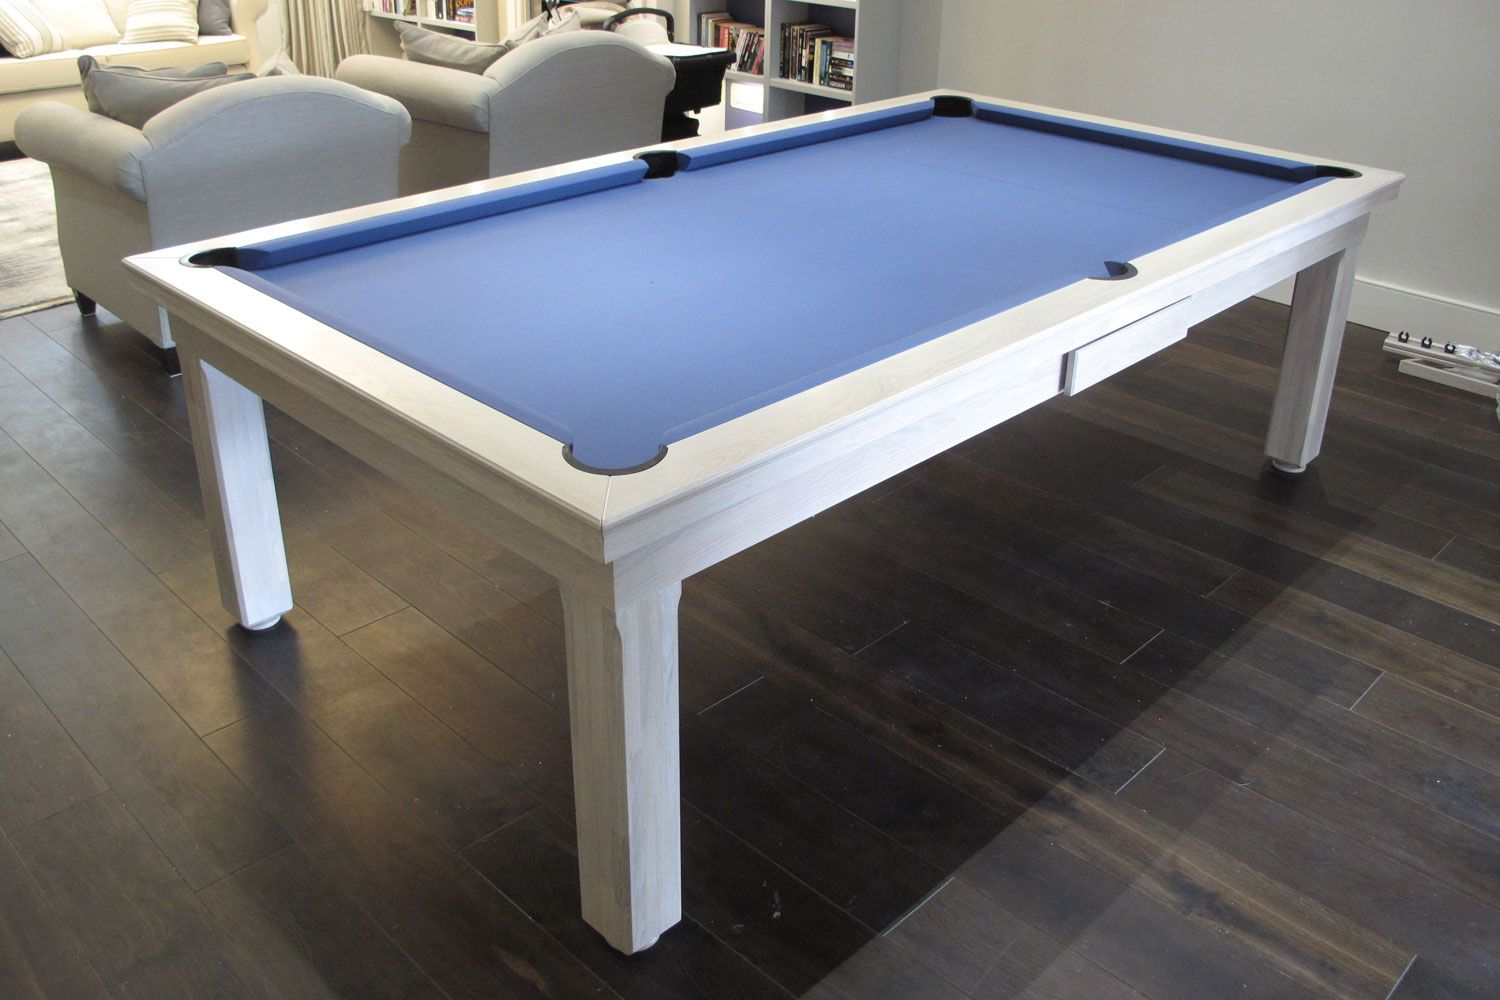 8u0027 American Pool Table With Ash Colour 8 And A Simonis Grey Cloth.  Www.luxury Pool Tables.co.uk | Our Colour 8   Luxury Pool Tables |  Pinterest | Luxury ...